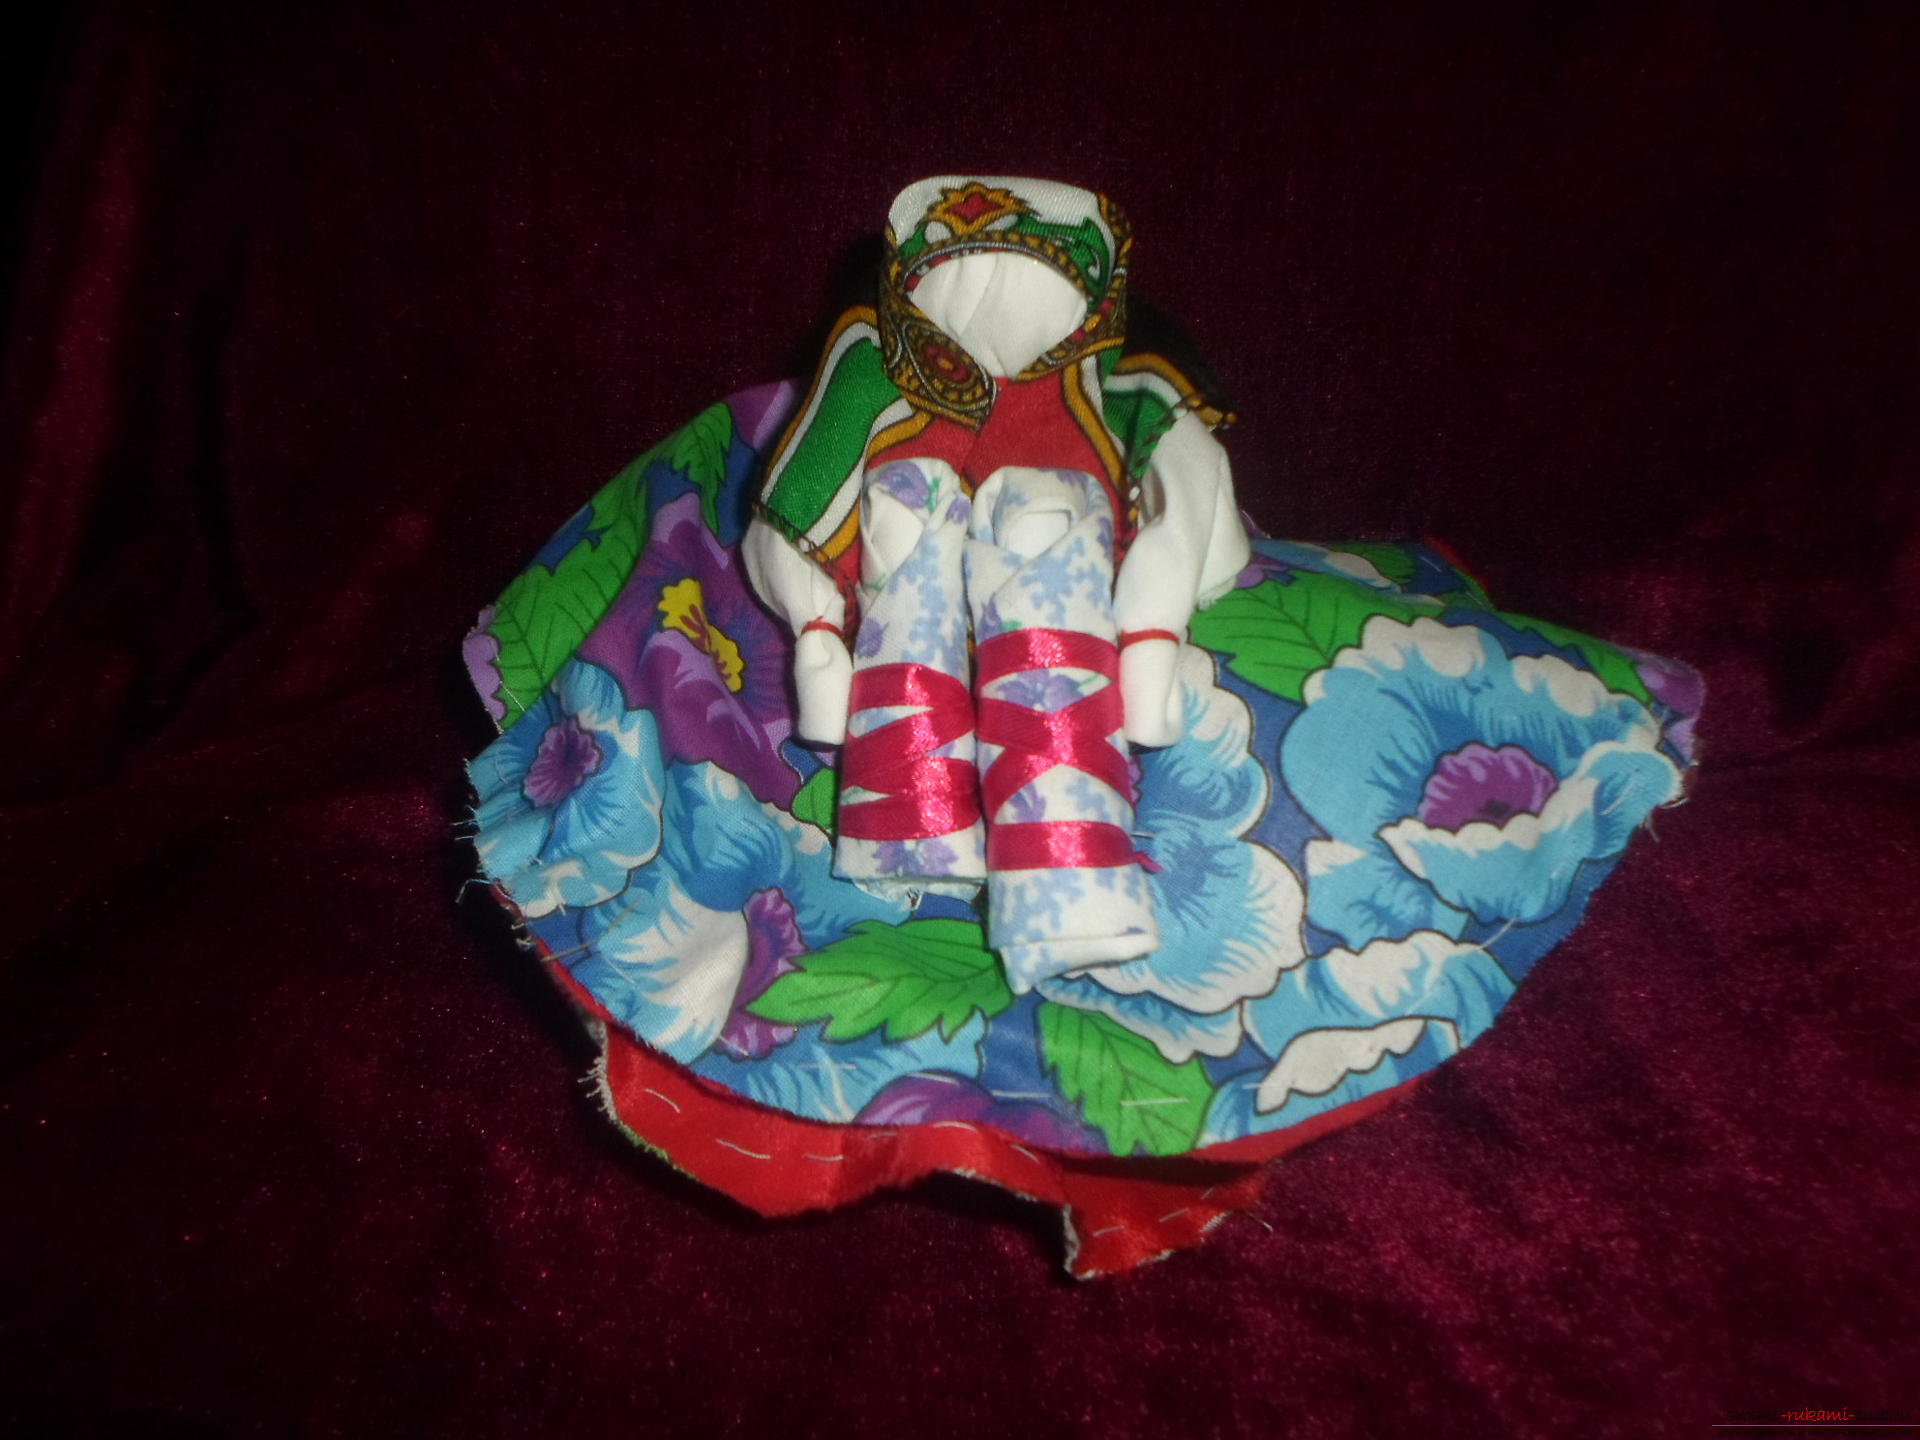 Slavic dolls, amulets for children's games and interior decorations in the Old Russian style. Photo №8